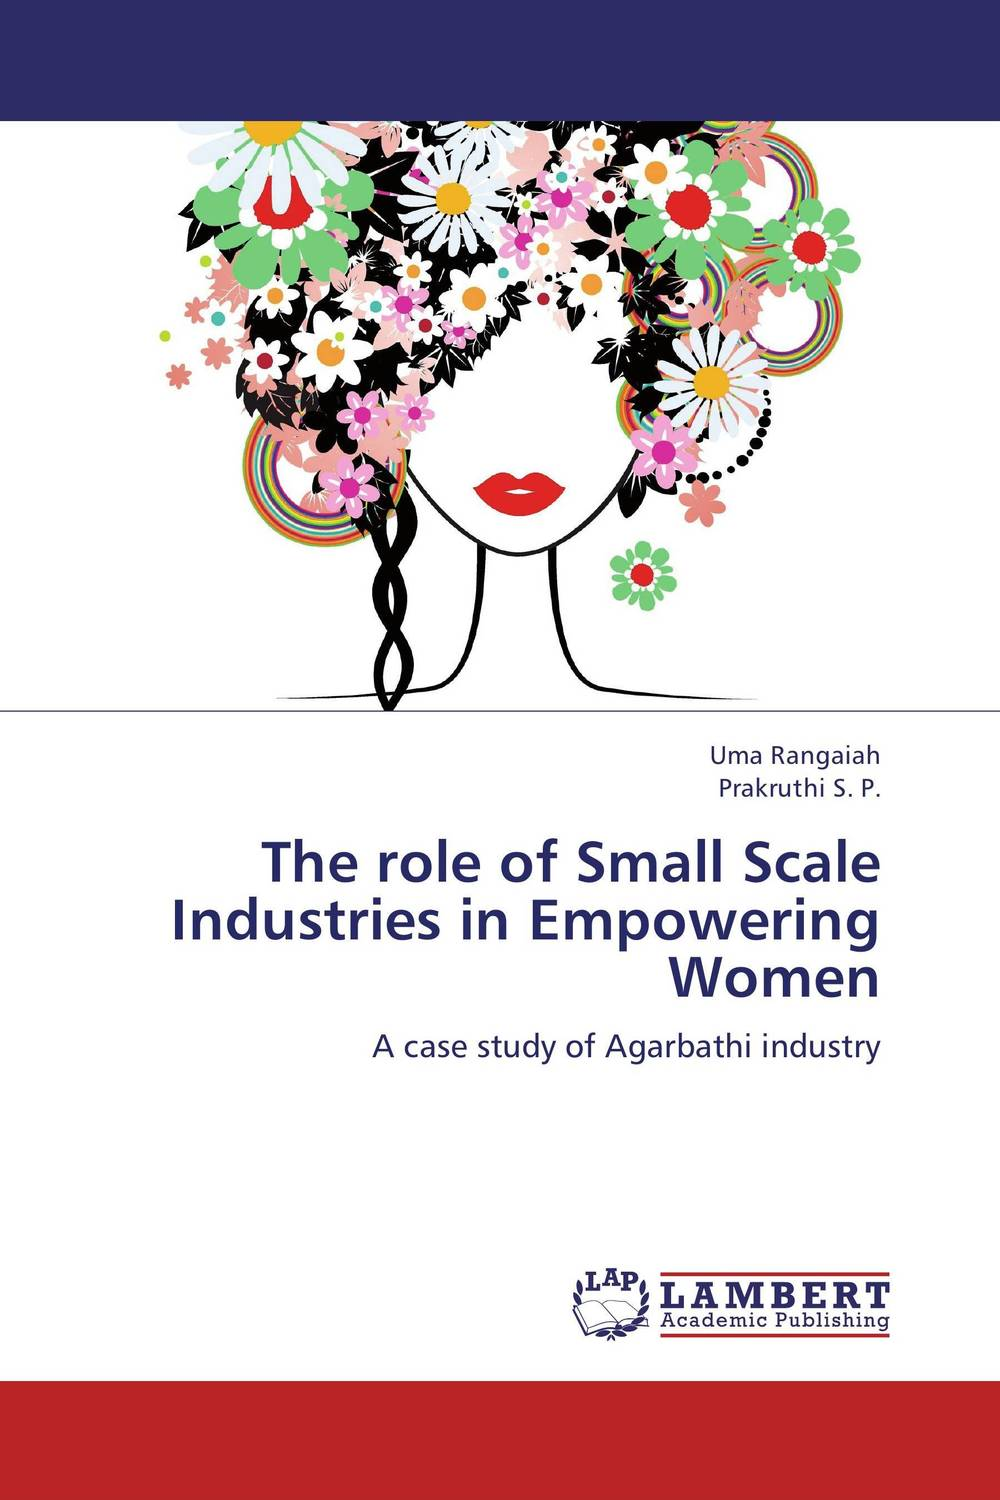 The role of  Small Scale Industries in Empowering Women xuan liu time consistency of optimal policy in a small open economy